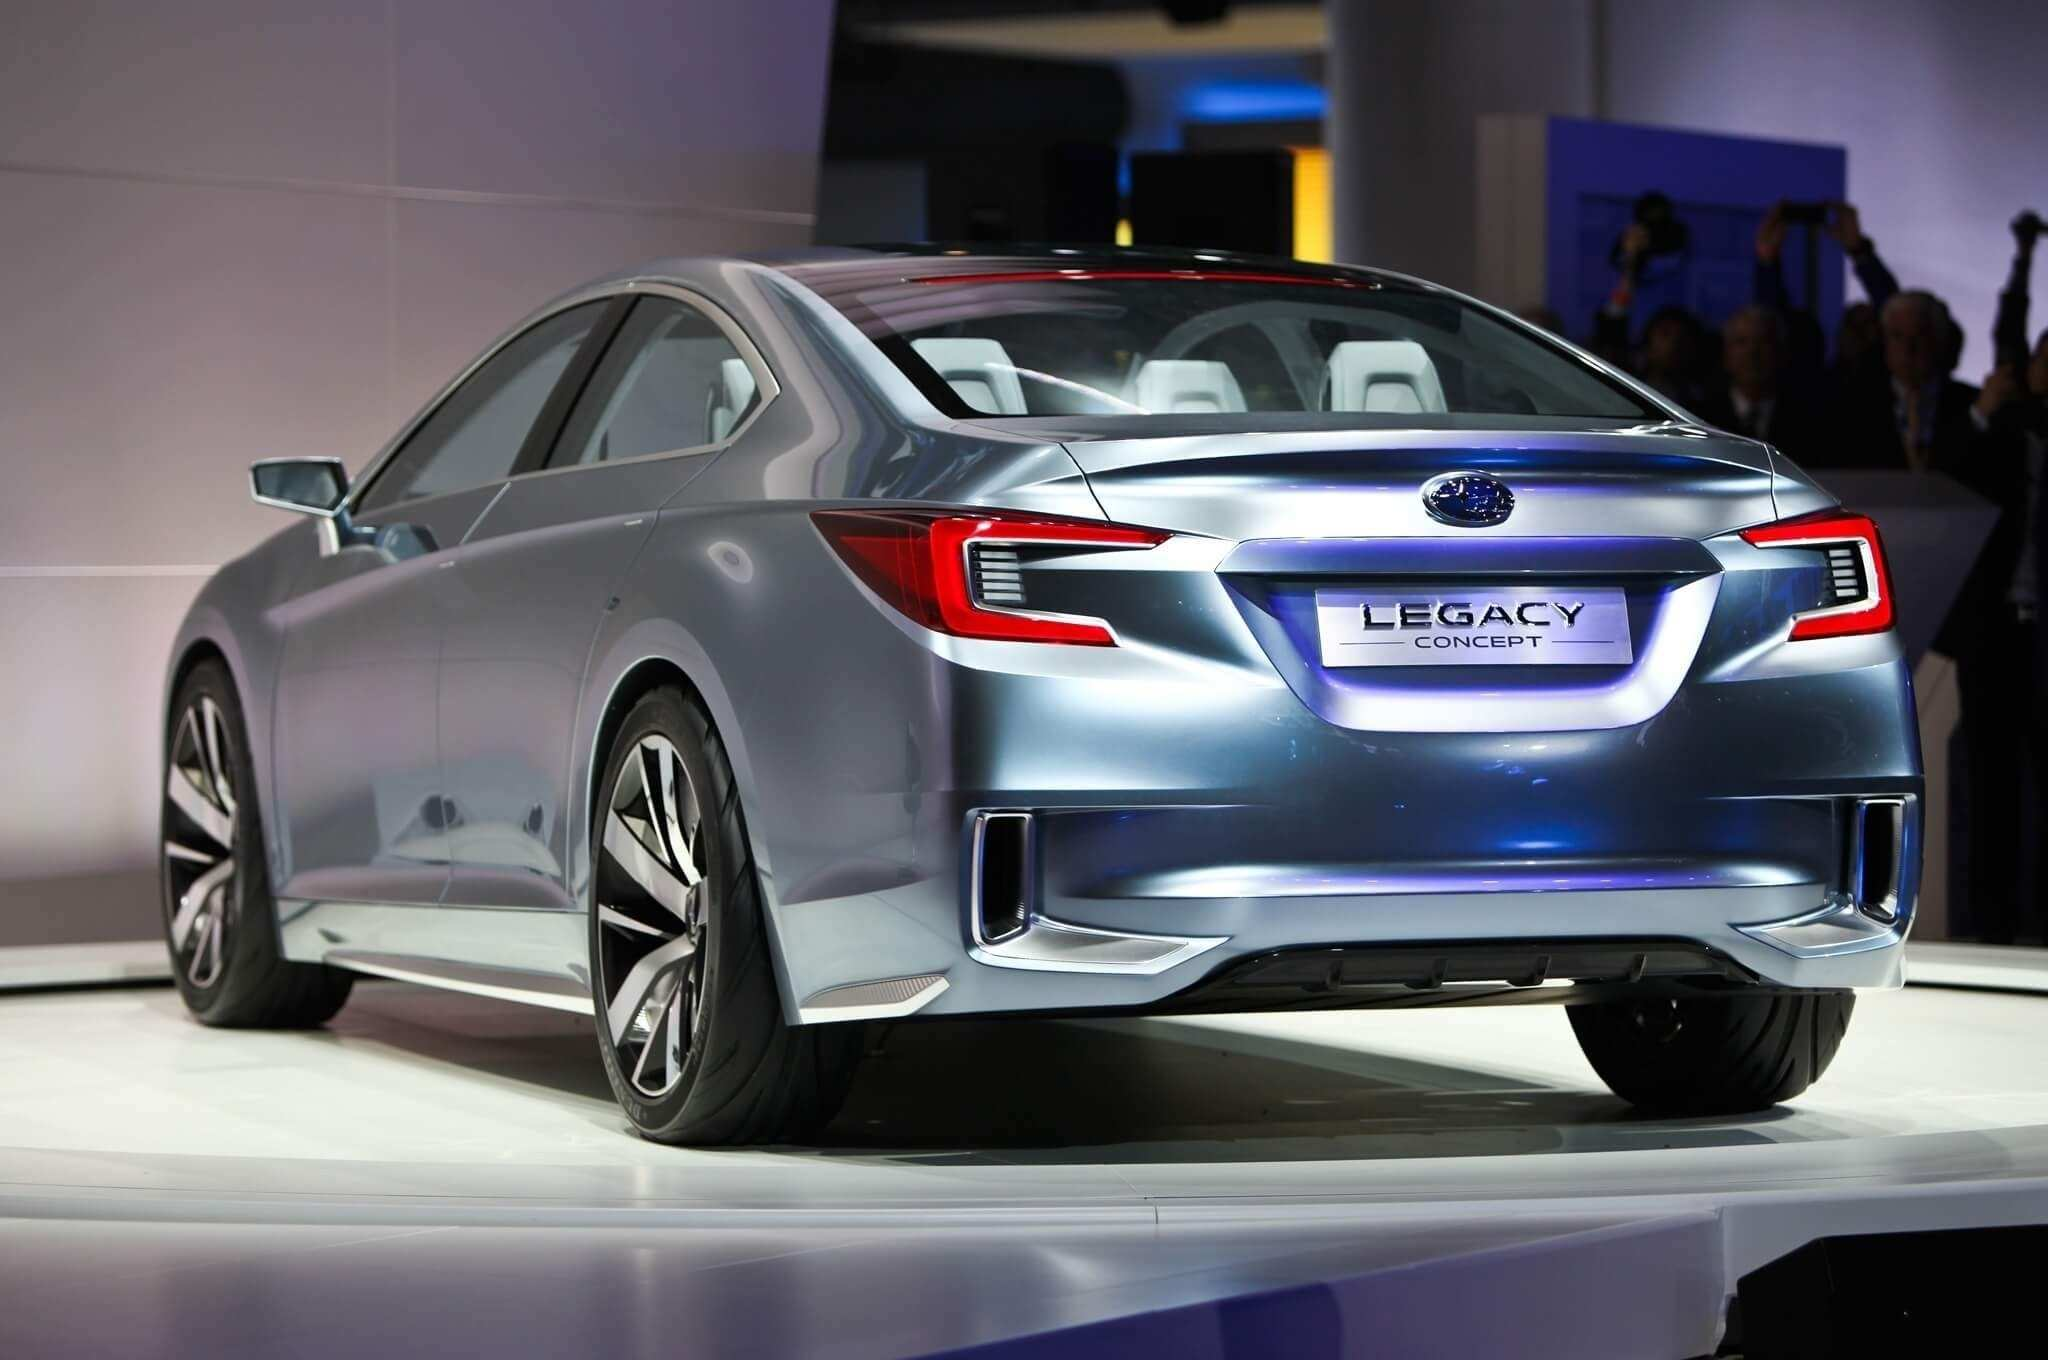 61 Concept of New Subaru Legacy 2019 Gt Review Release for New Subaru Legacy 2019 Gt Review